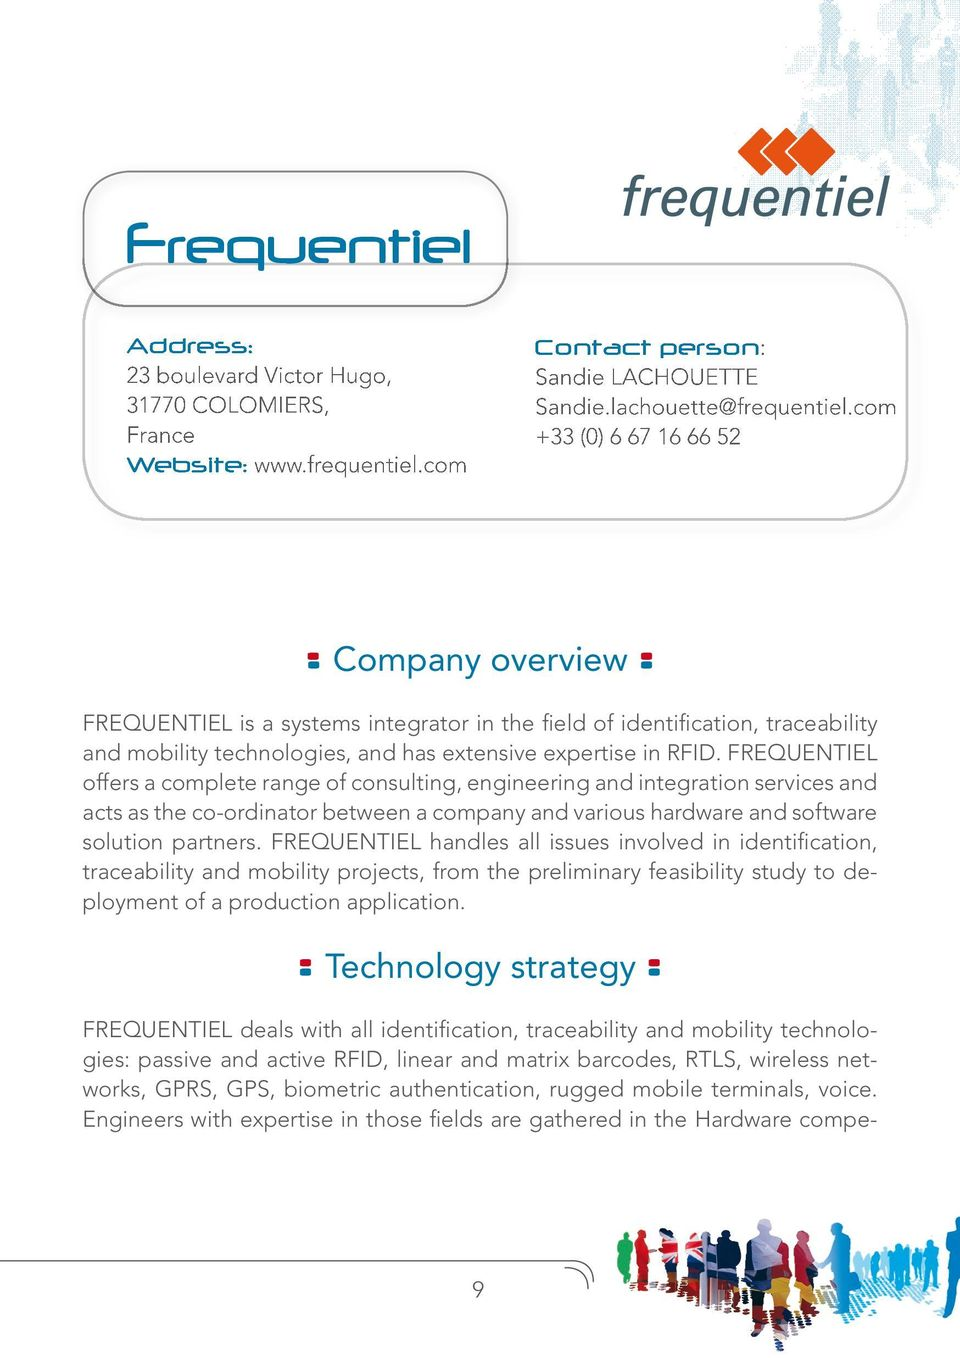 FREQUENTIEL offers a complete range of consulting, engineering and integration services and acts as the co-ordinator between a company and various hardware and software solution partners.